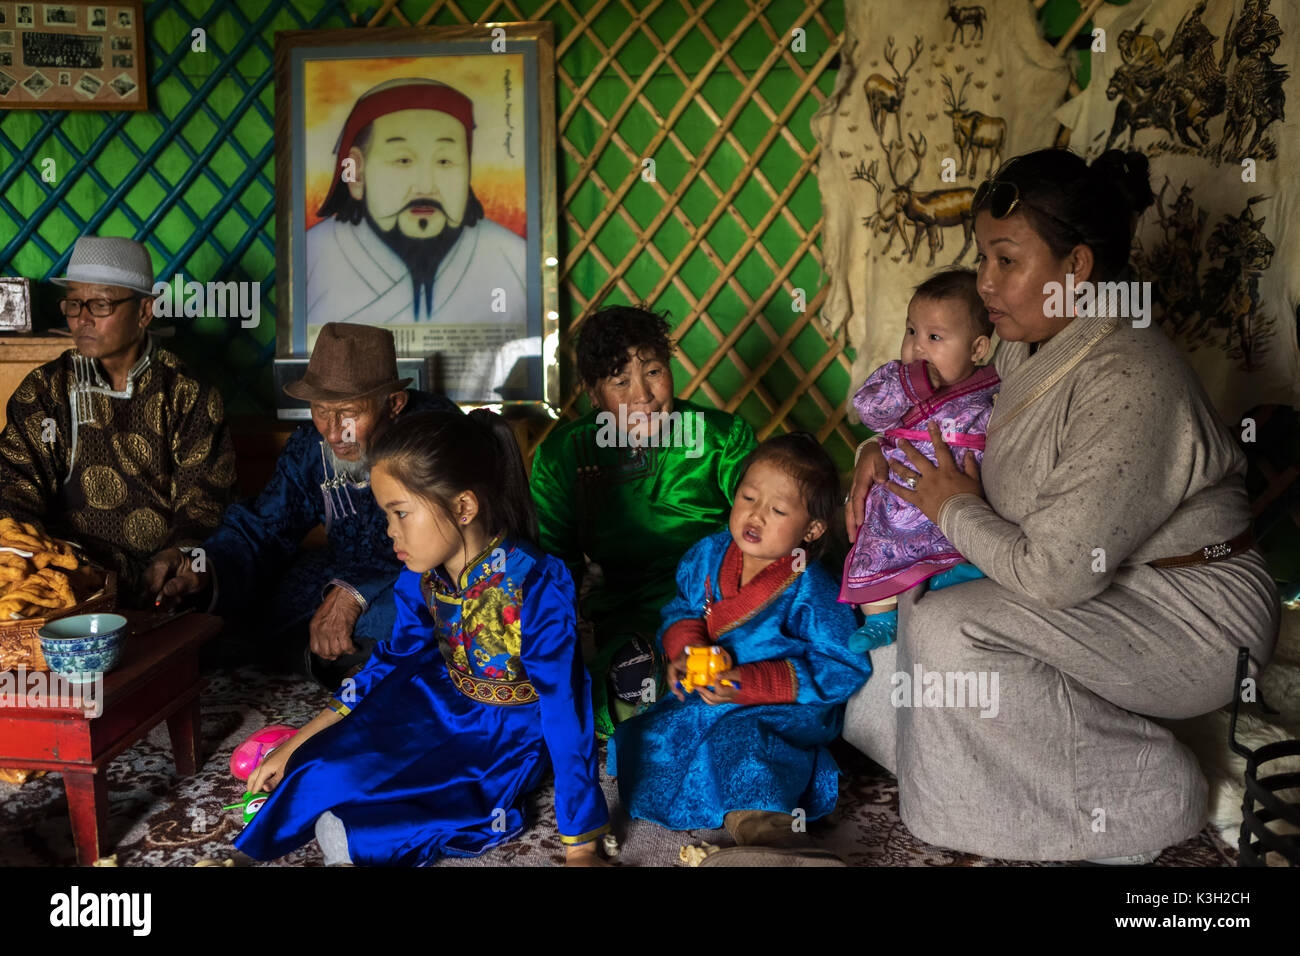 Inner Mongolia, China-July 26, 2017: Traditionally dressed Mongolian family sitting in their tent (called as Yurt). - Stock Image